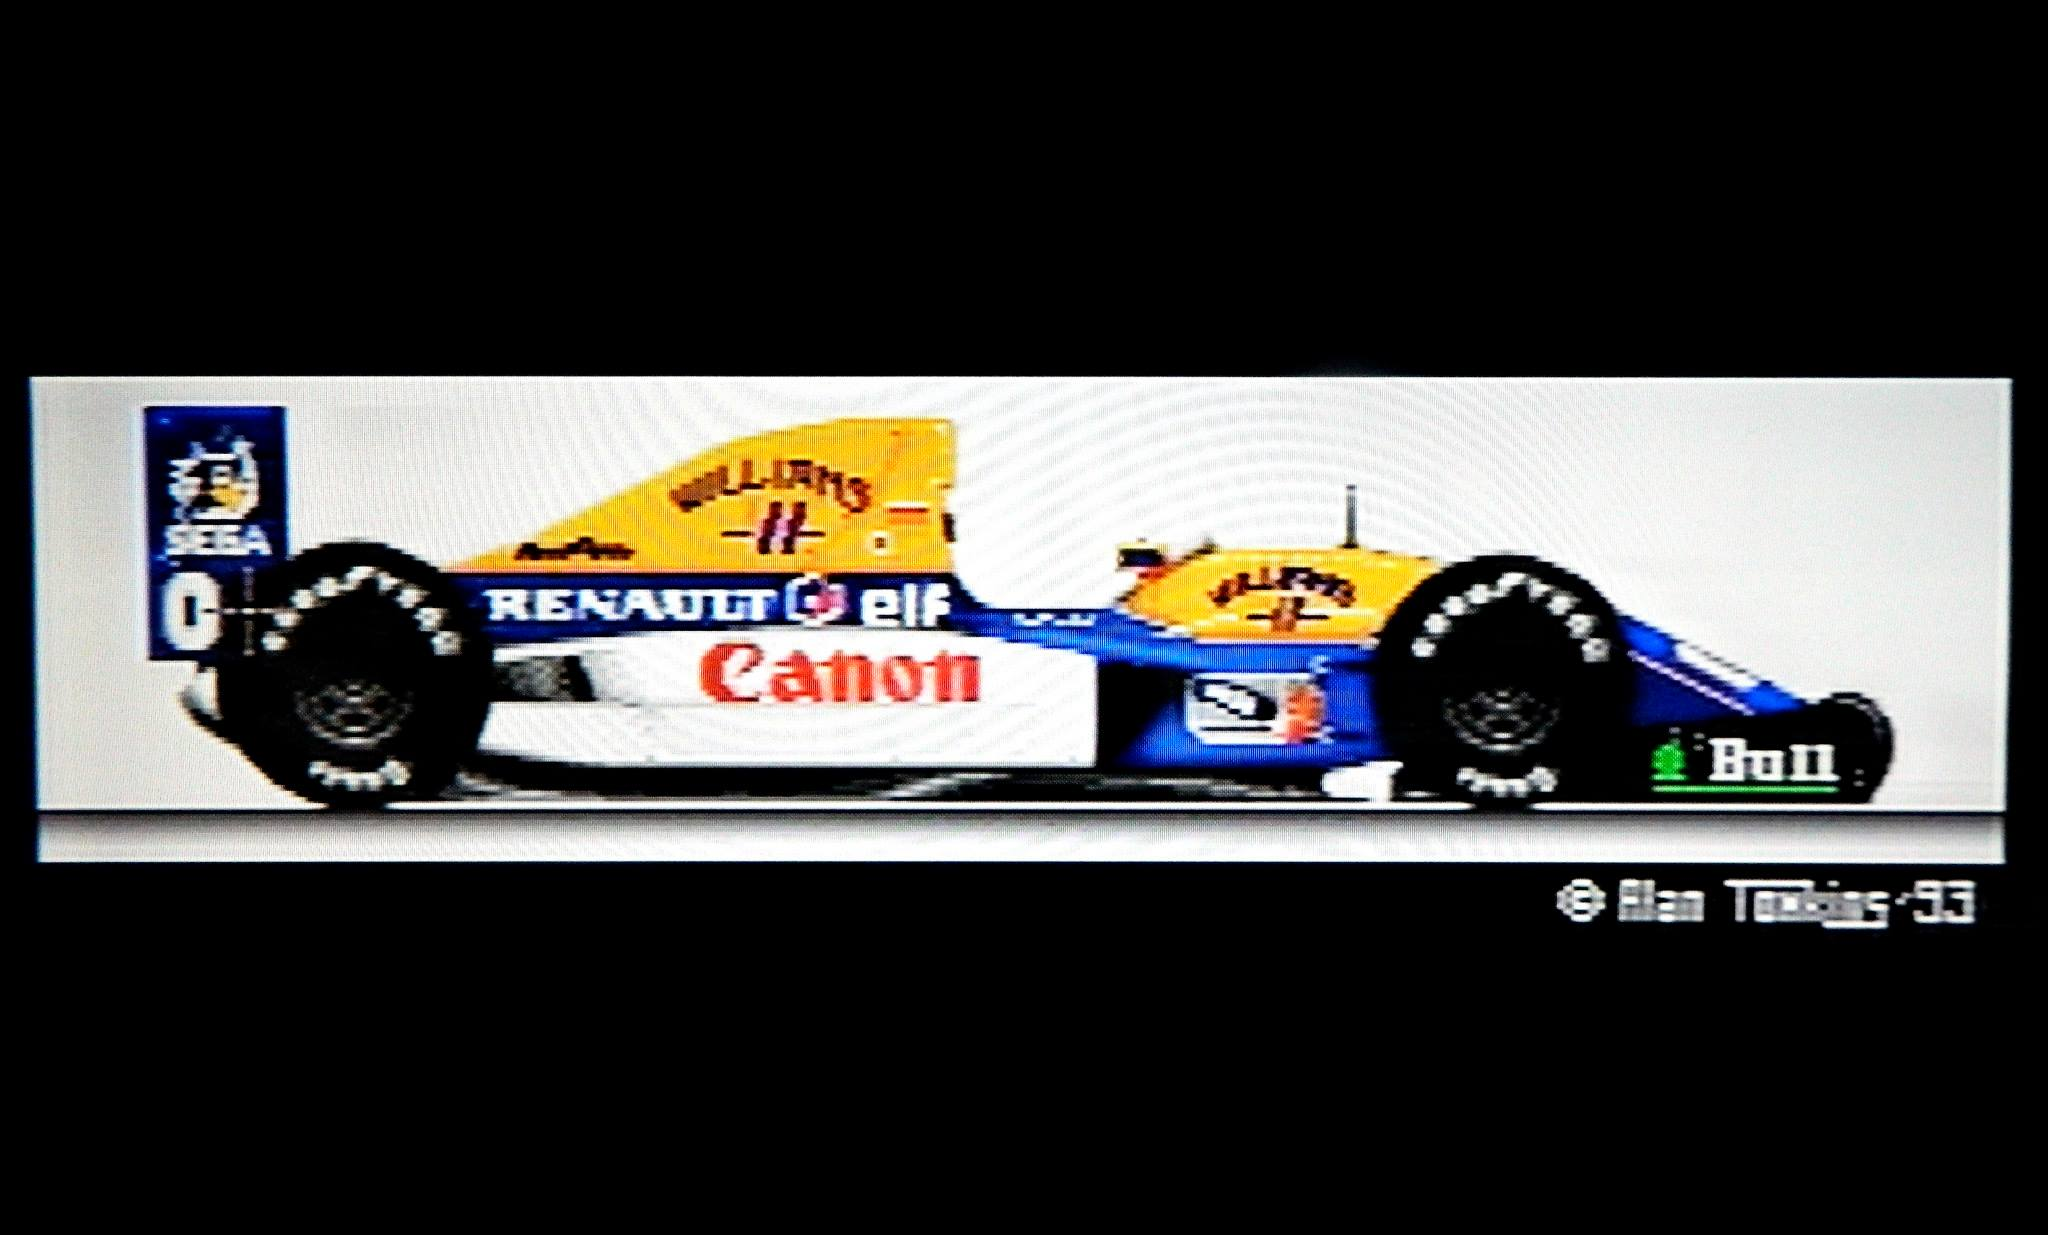 The Williams F1 car of 1993, drawn by hand for the Marlboro GP game. This game was part of Marlboro's Grand Prix promotion.